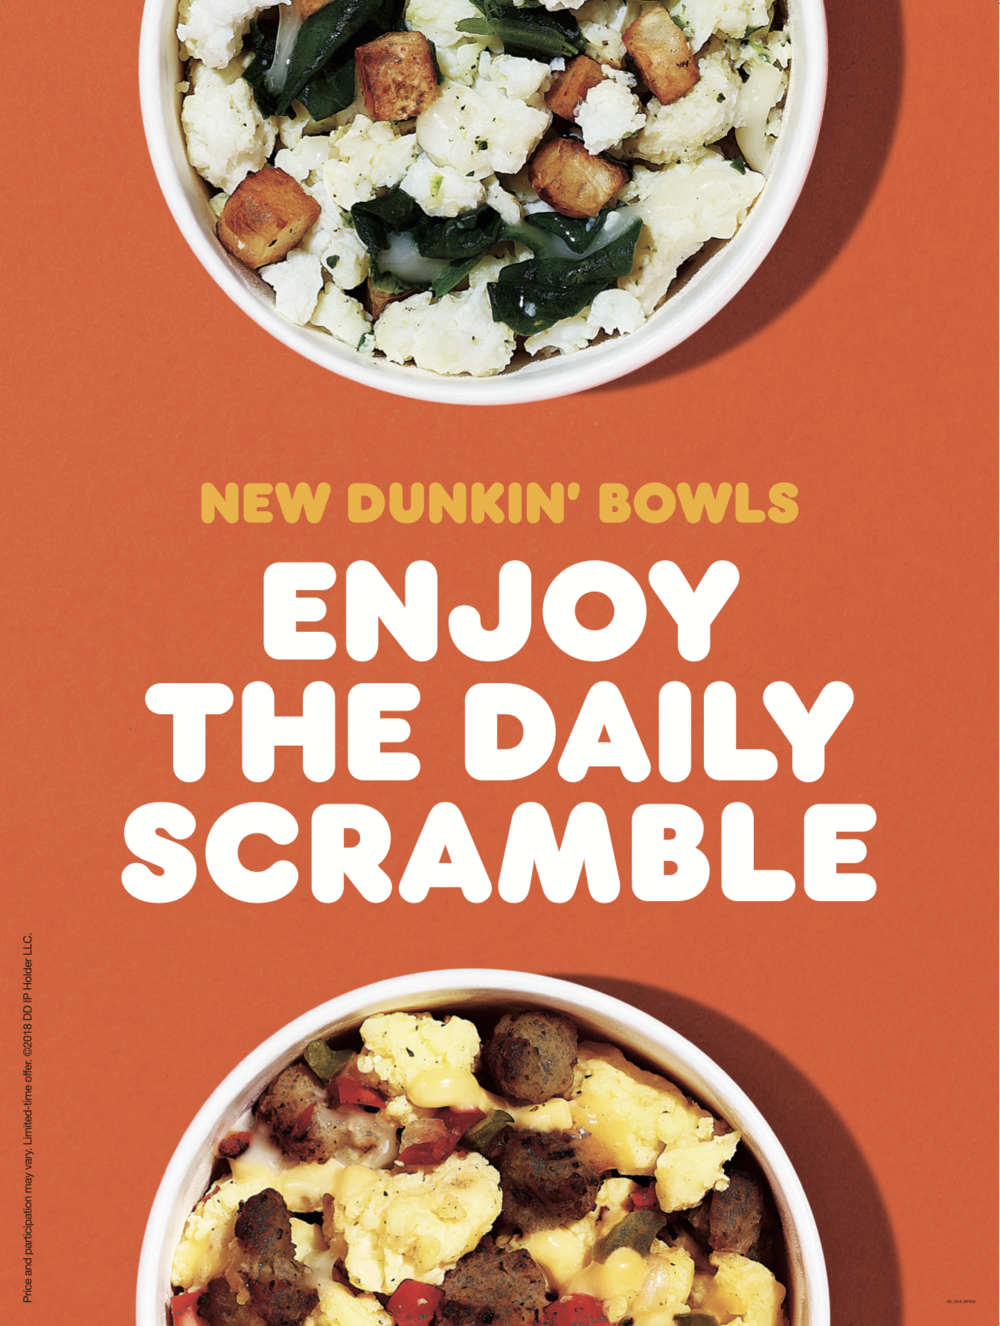 DunkinBowlsPoster.png